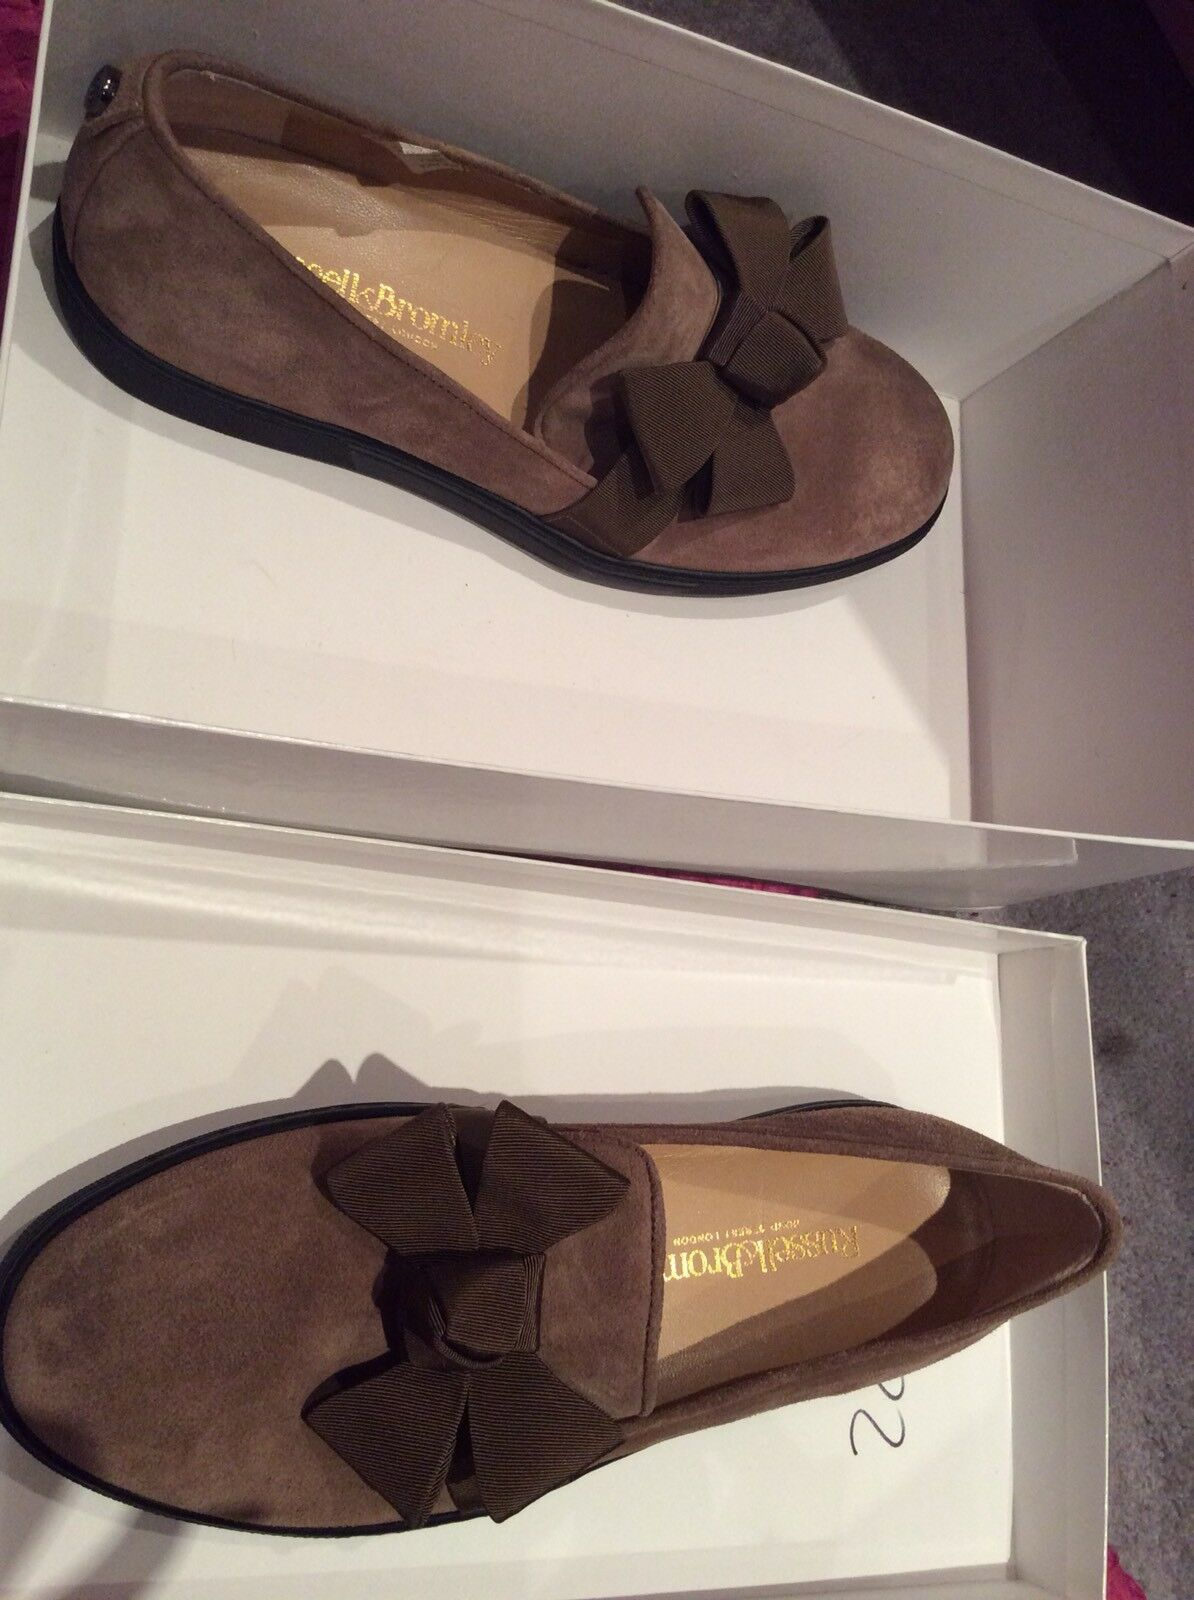 russell et bromley - - 37 - - 4 - prr - Marron  - glisse ons 9512c6